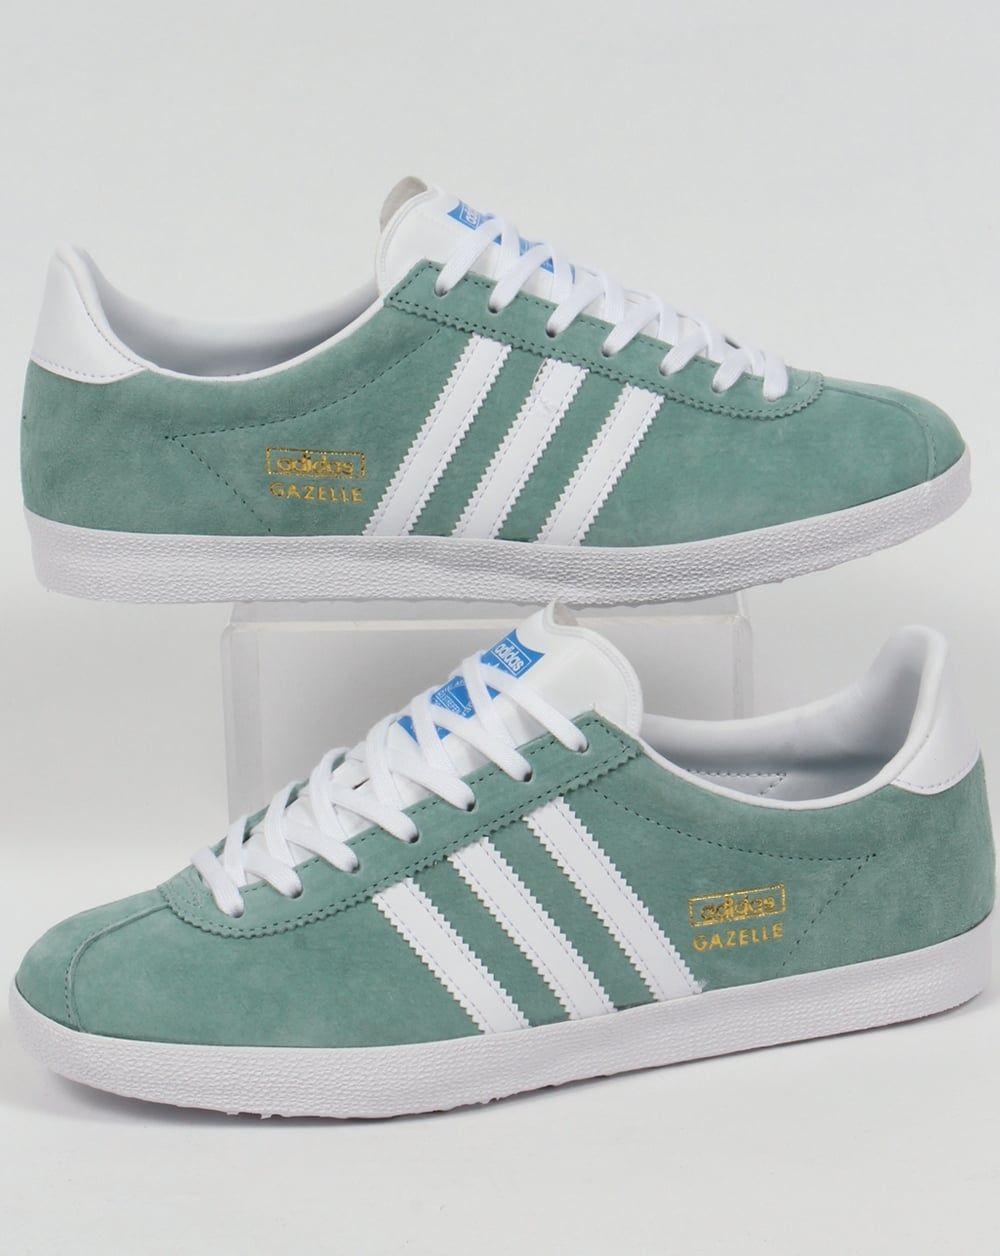 927857dc041b3 Adidas Gazelle OG Trainers Legend Green/White | Addidas | Adidas ...